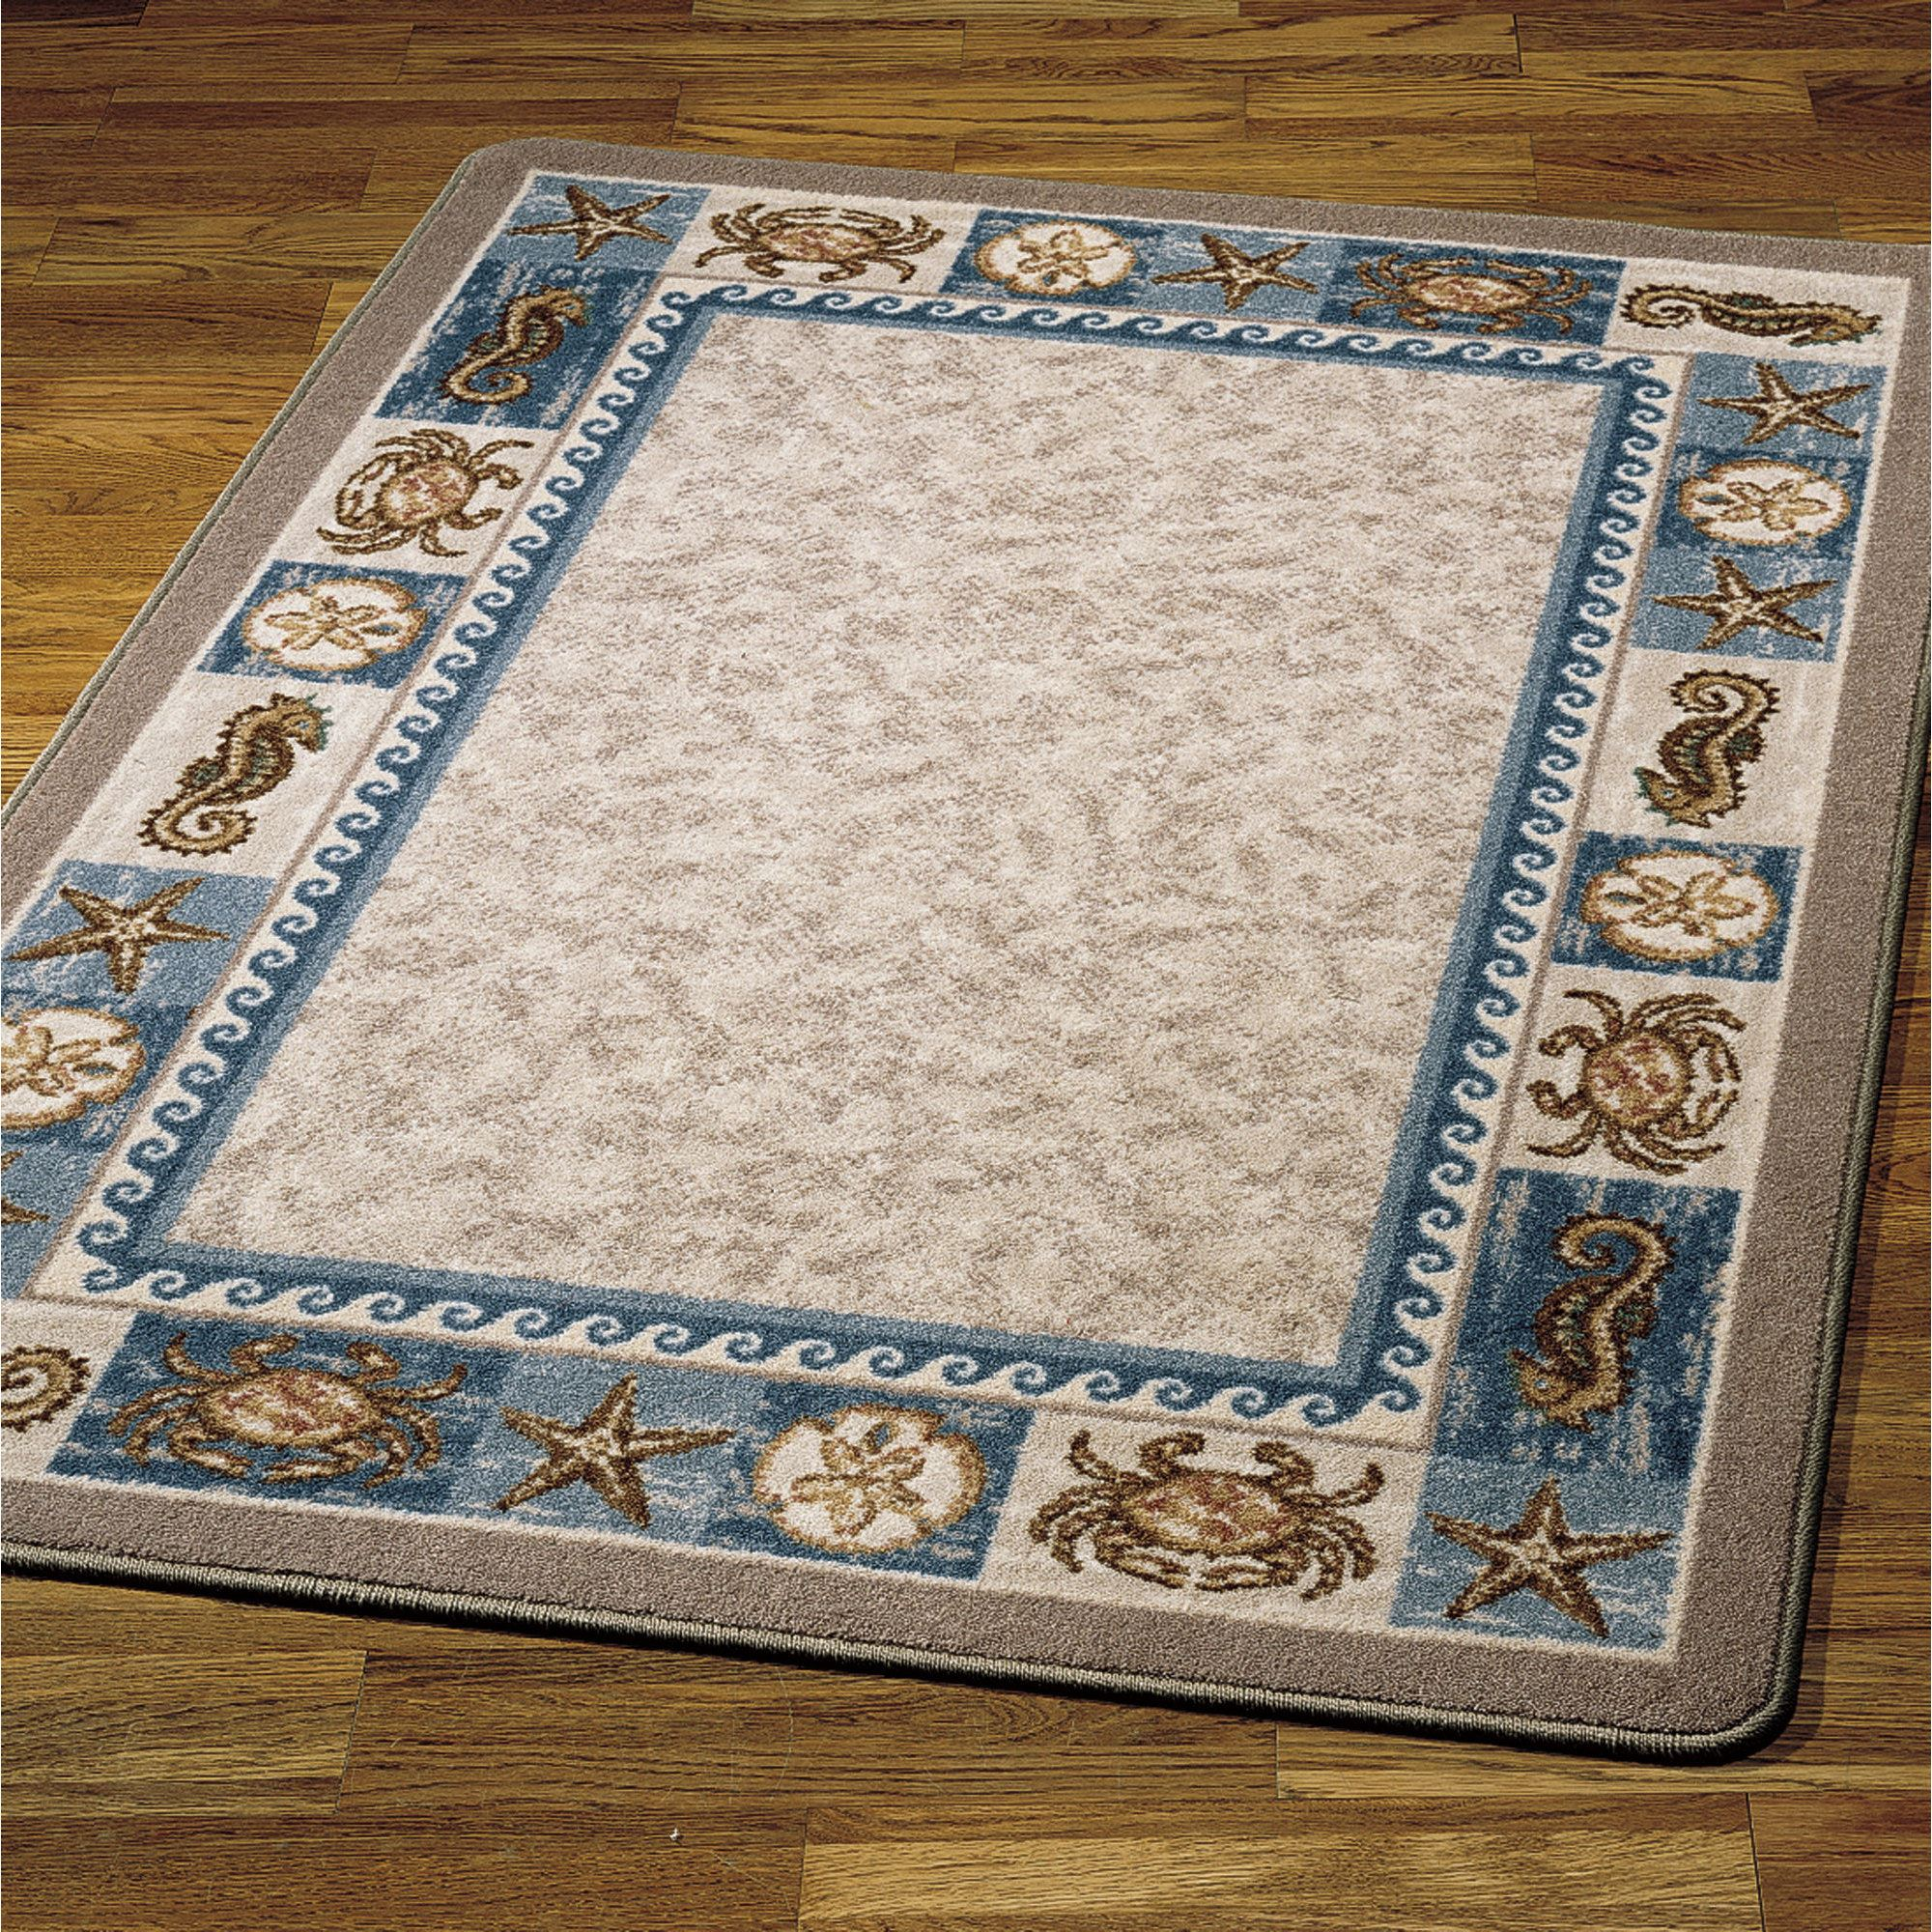 x overstock nautical indoor free havenside outdoor product area shipping nuloom coronado blue ropes home rug porch garden rugs today